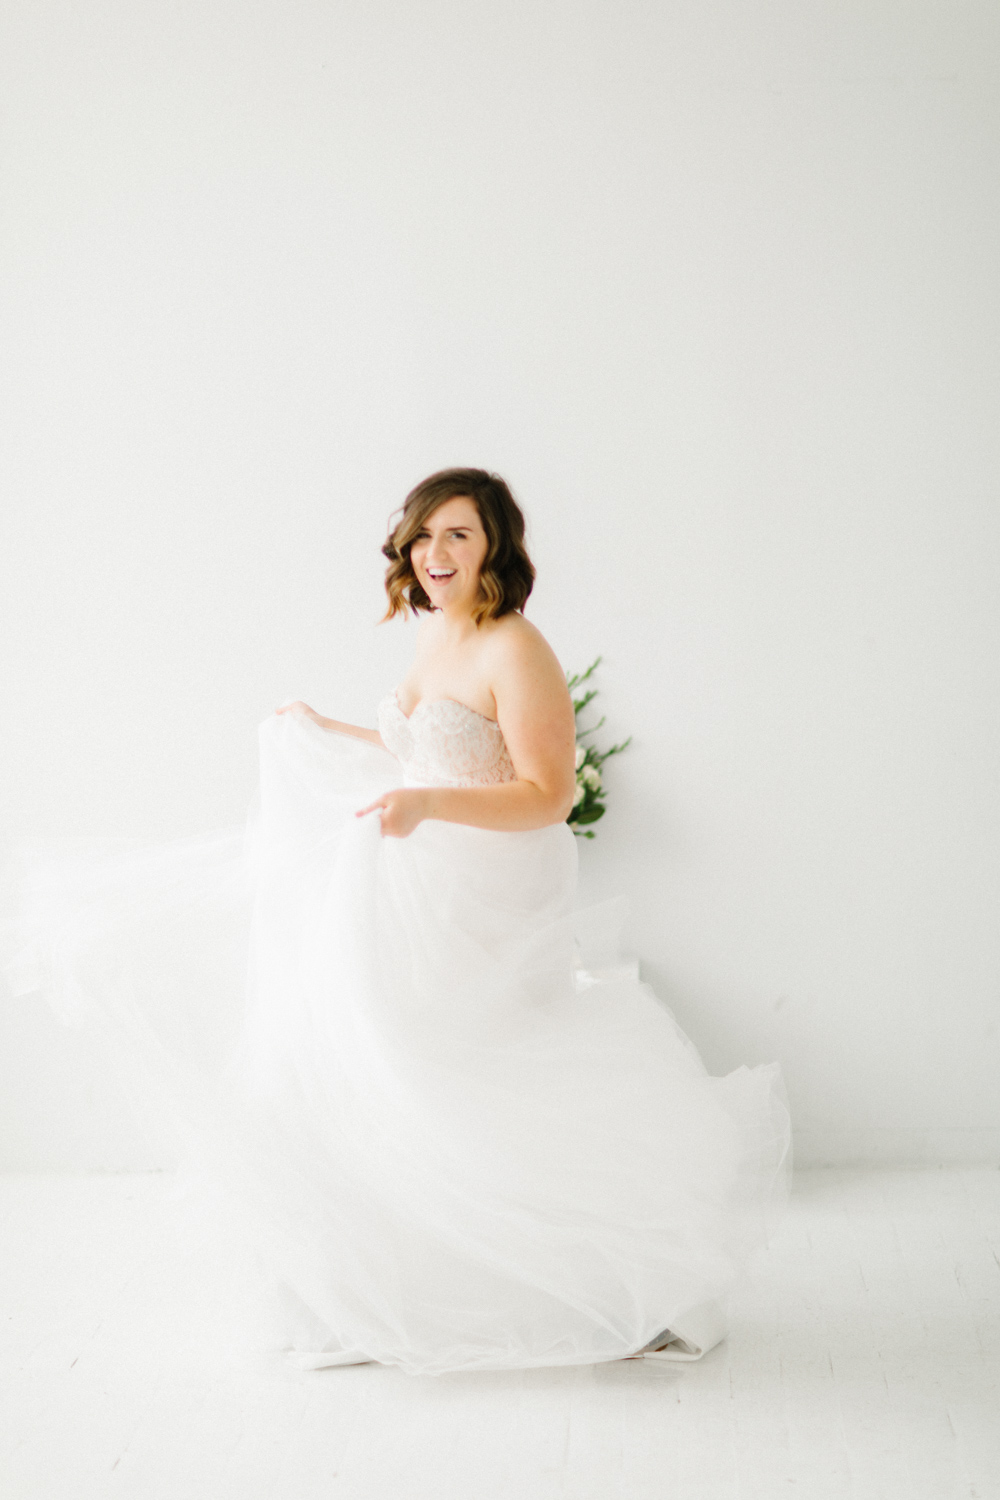 Seattle Fine Art Wedding Photographer | Seattle Downtown White Studio Bridal Session | Stunning Wedding Bouquet | Seattle Bride | Seattle Wedding | Photography Studio Space | Emma Rose Company Wedding Photography-5.jpg